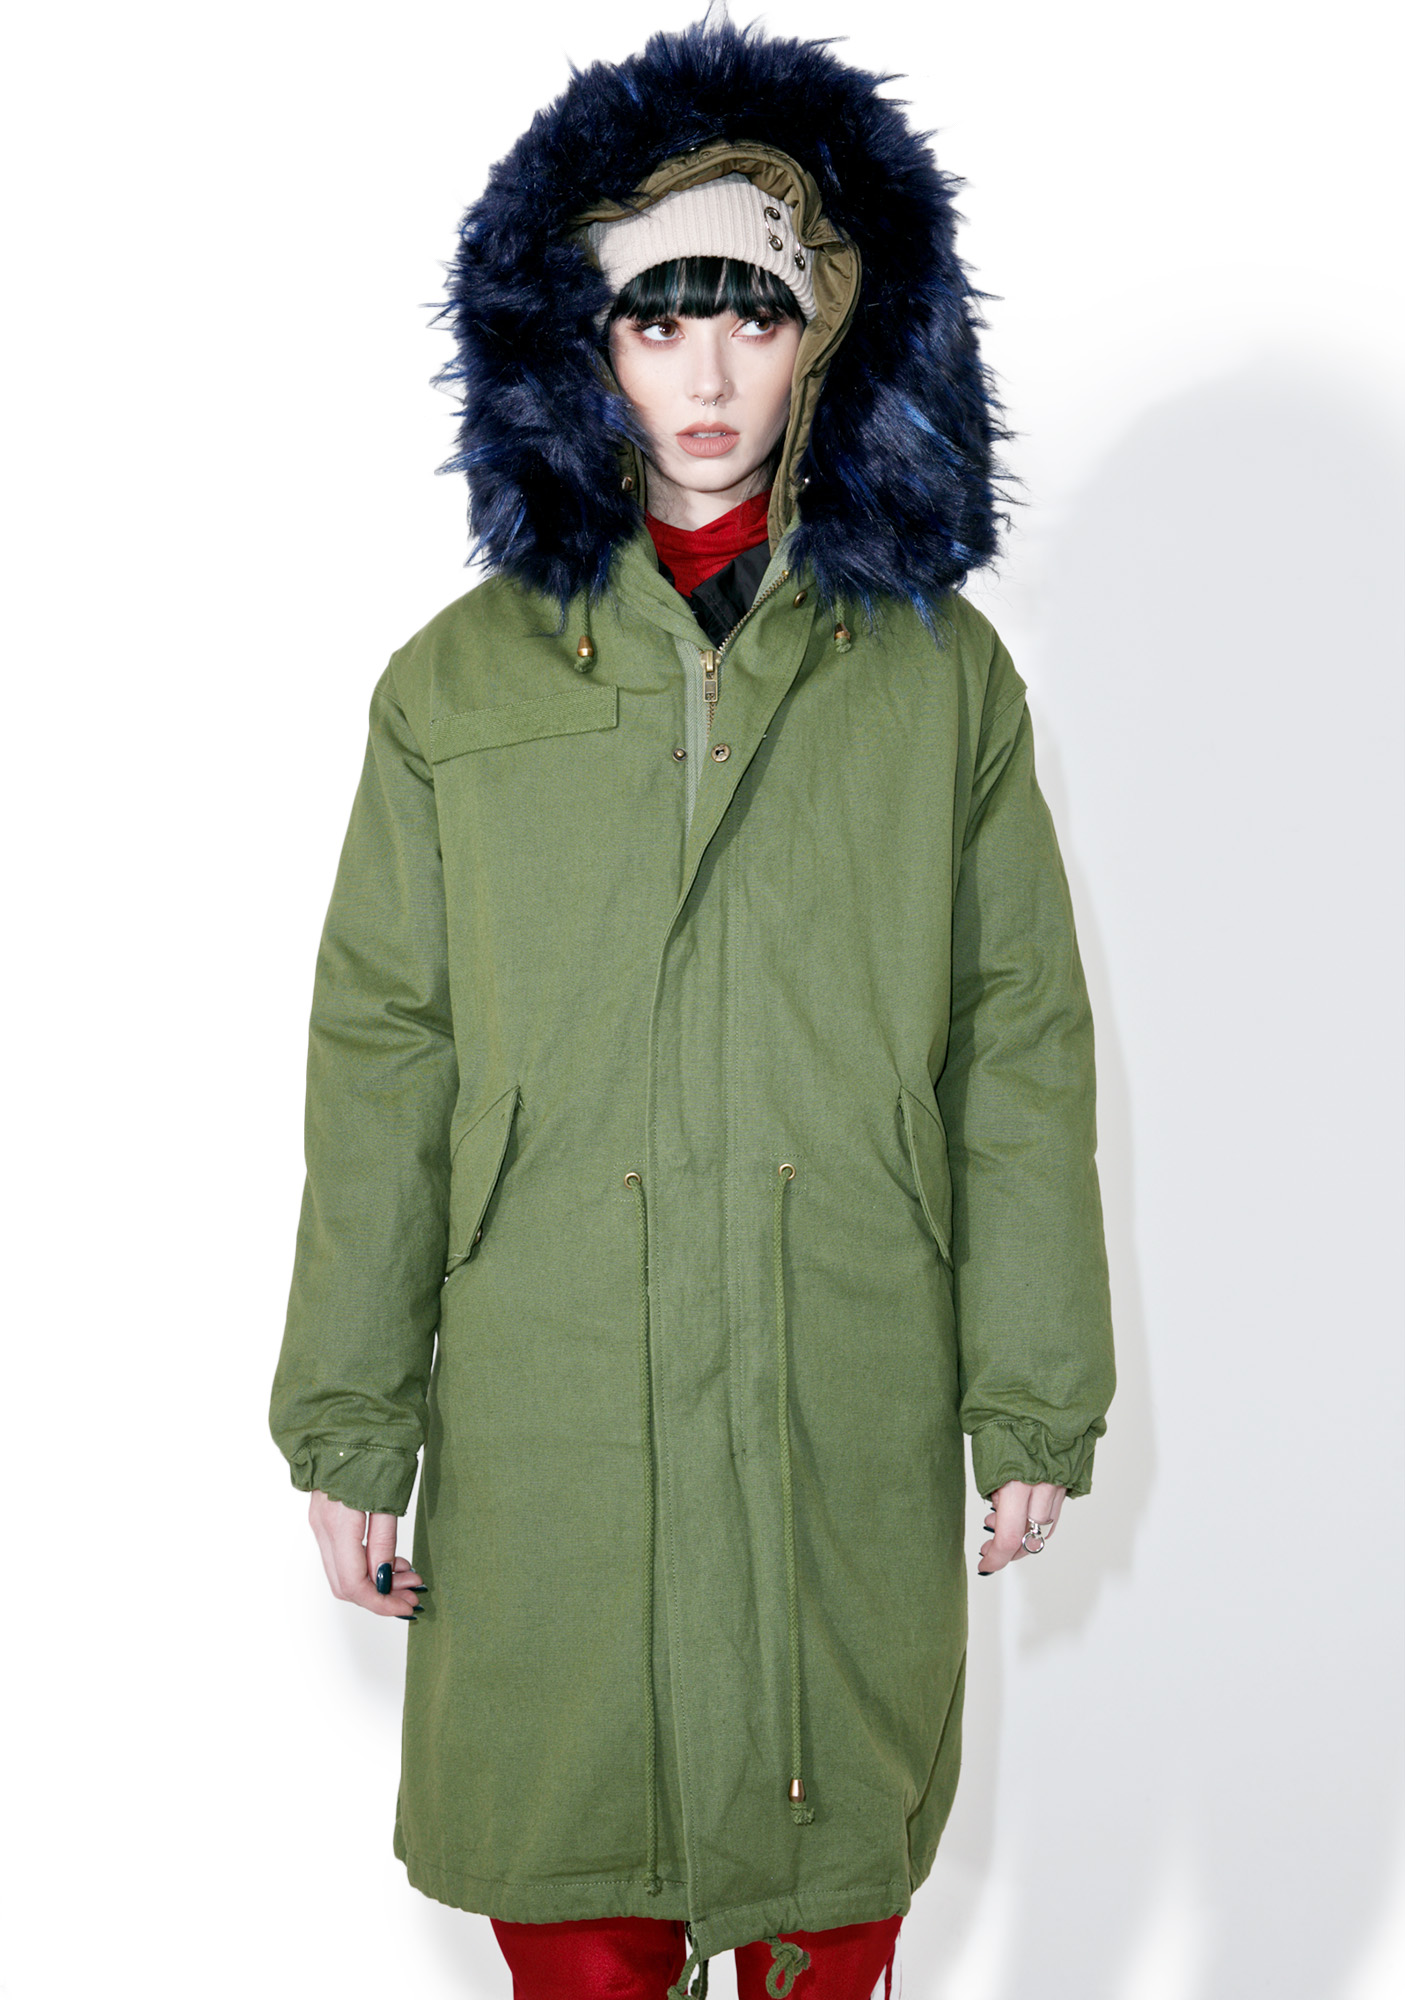 Green Parka Jacket with Blue Fur